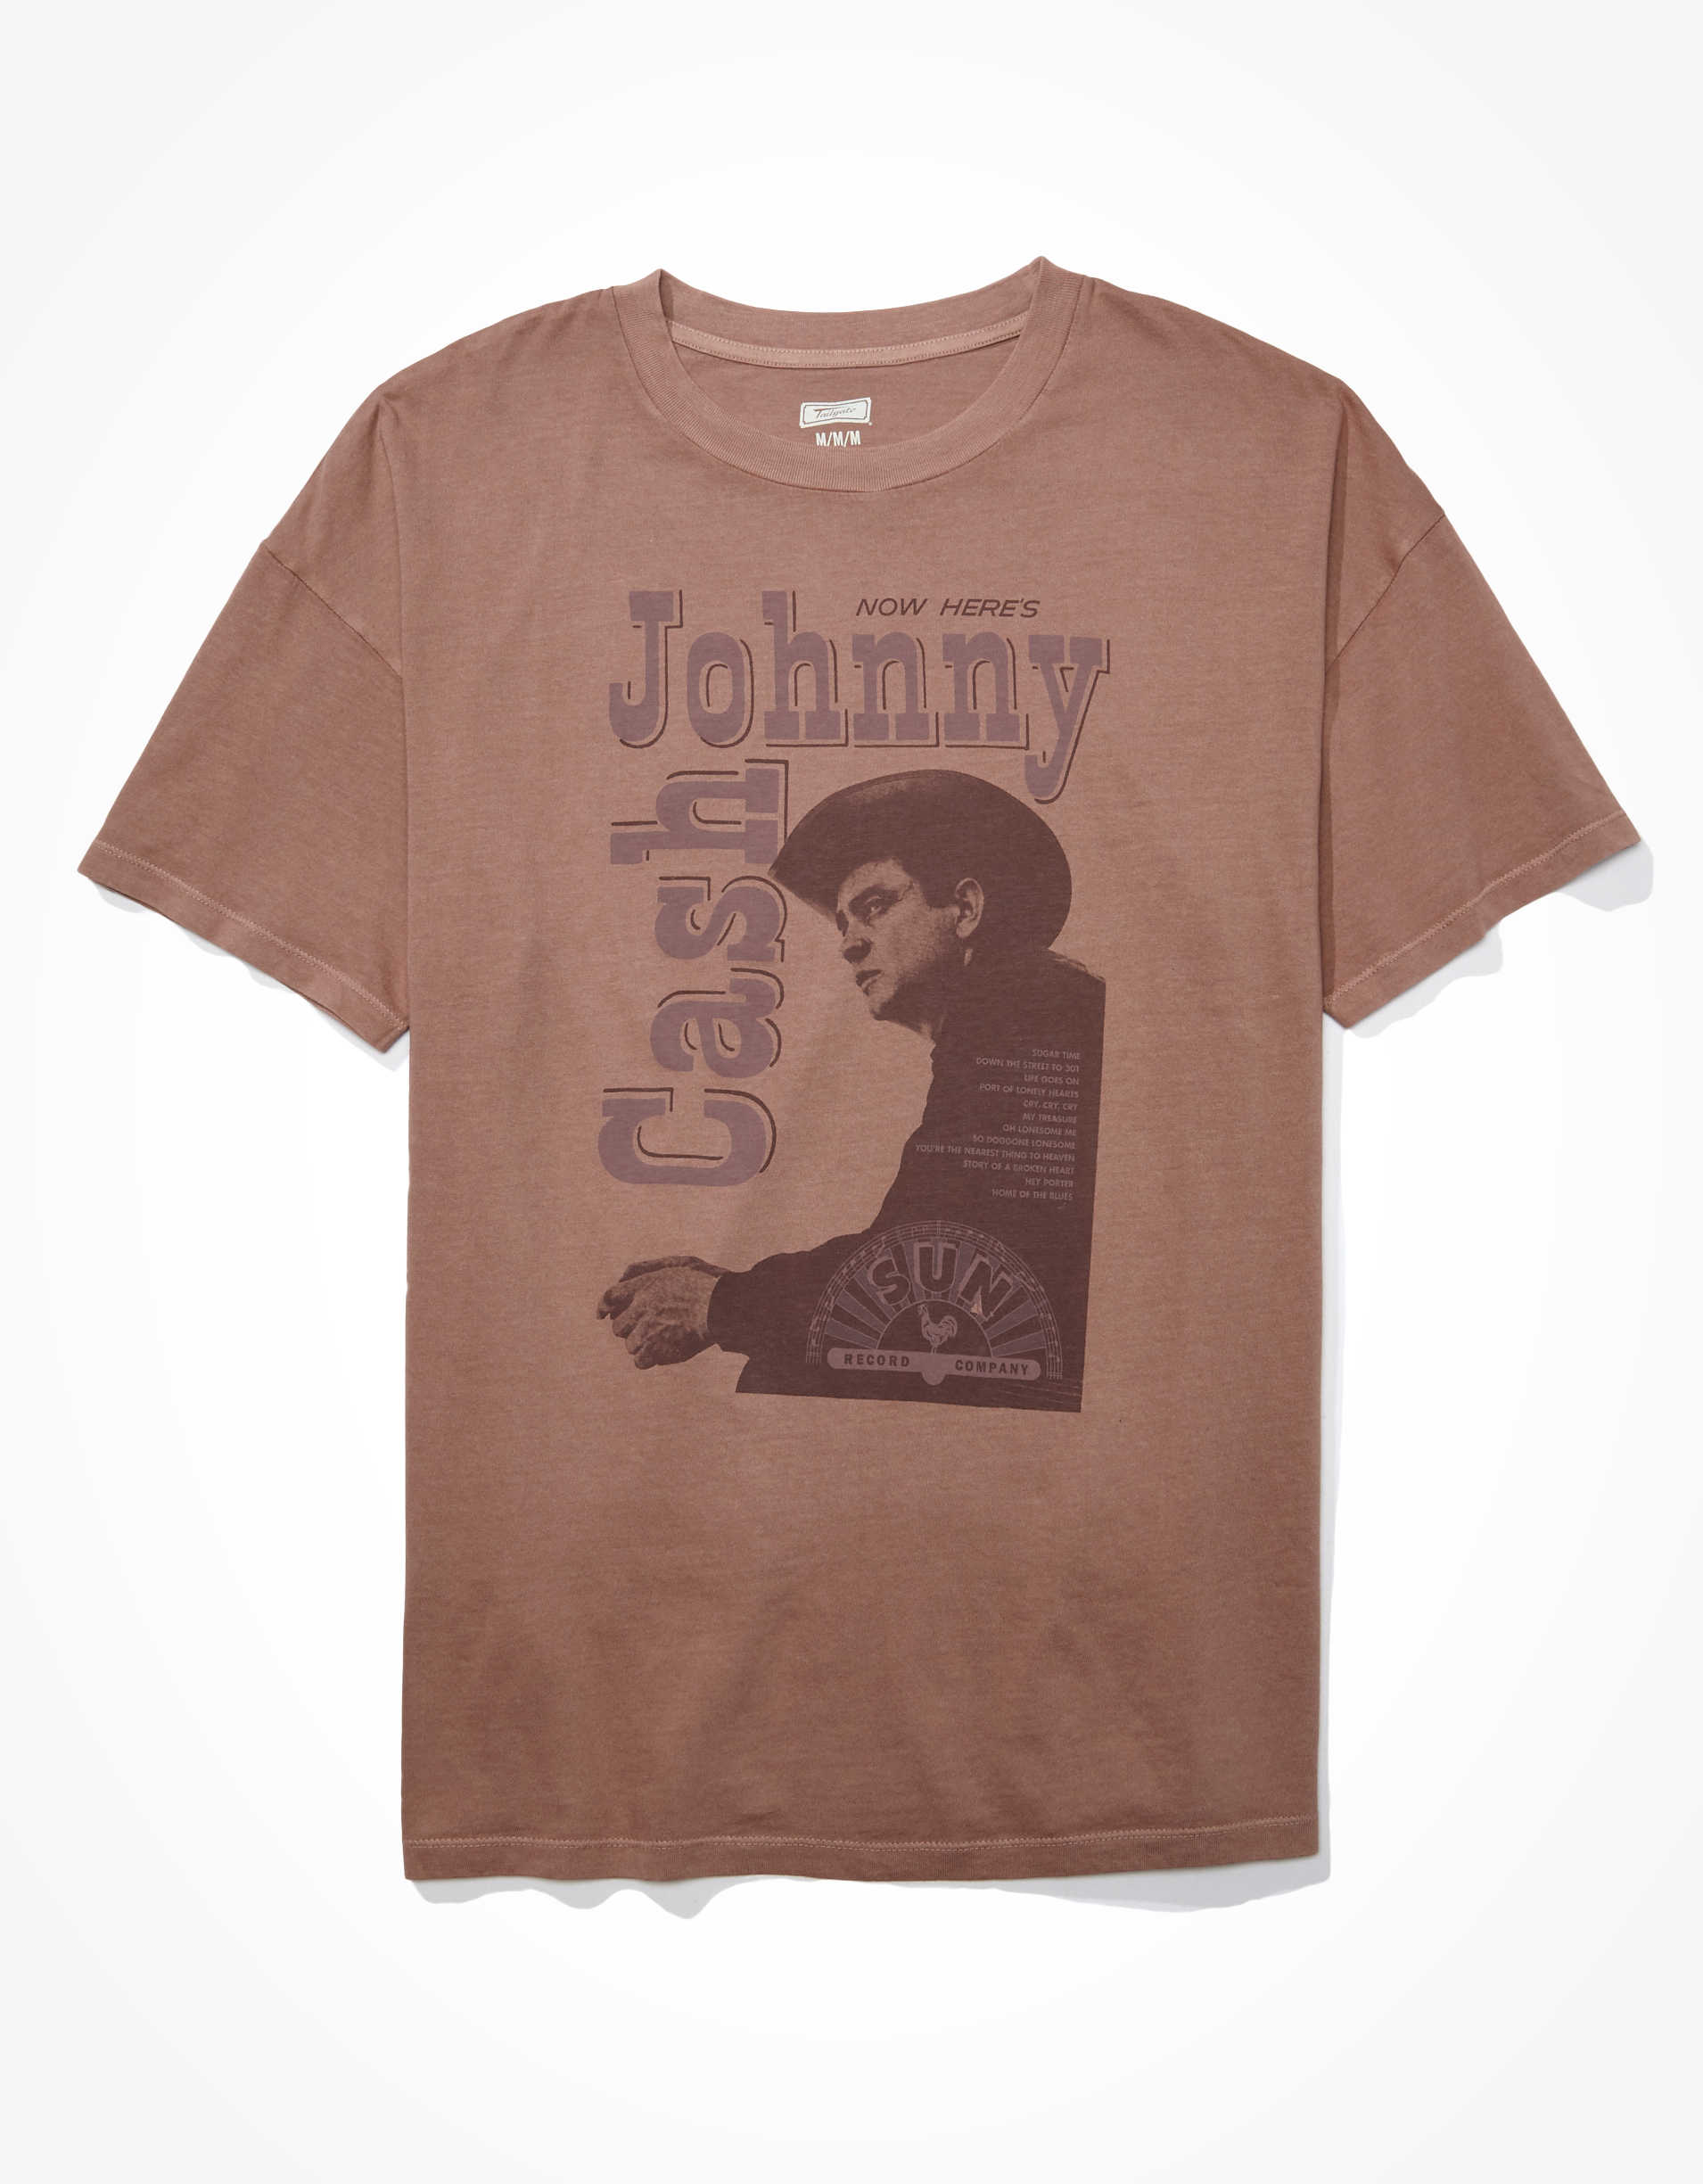 AE Oversized Johnny Cash Graphic T-Shirt